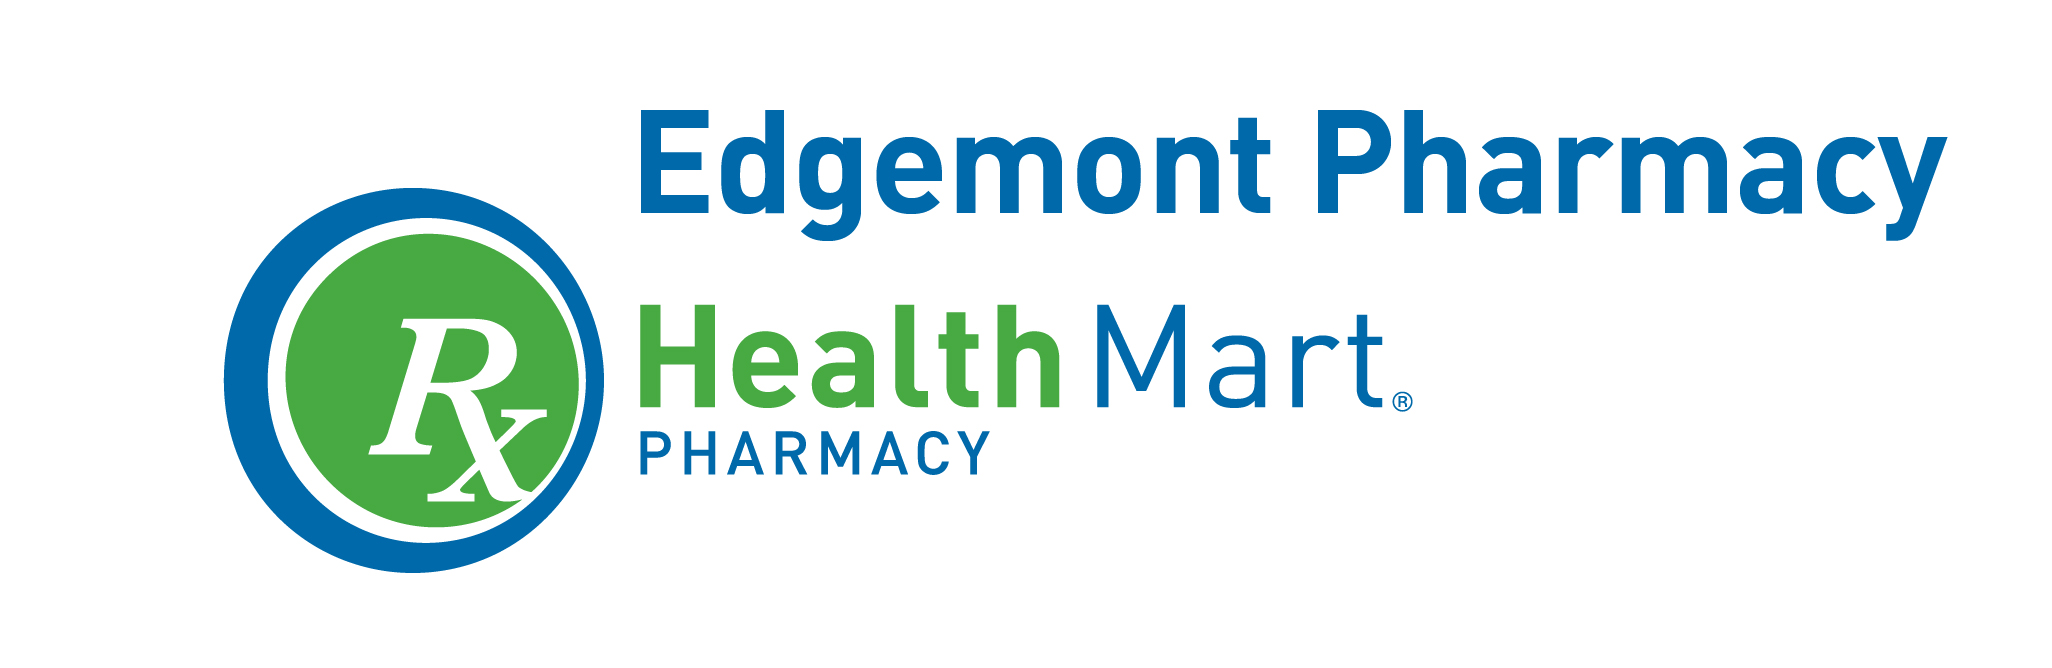 Edgemont Pharmacy